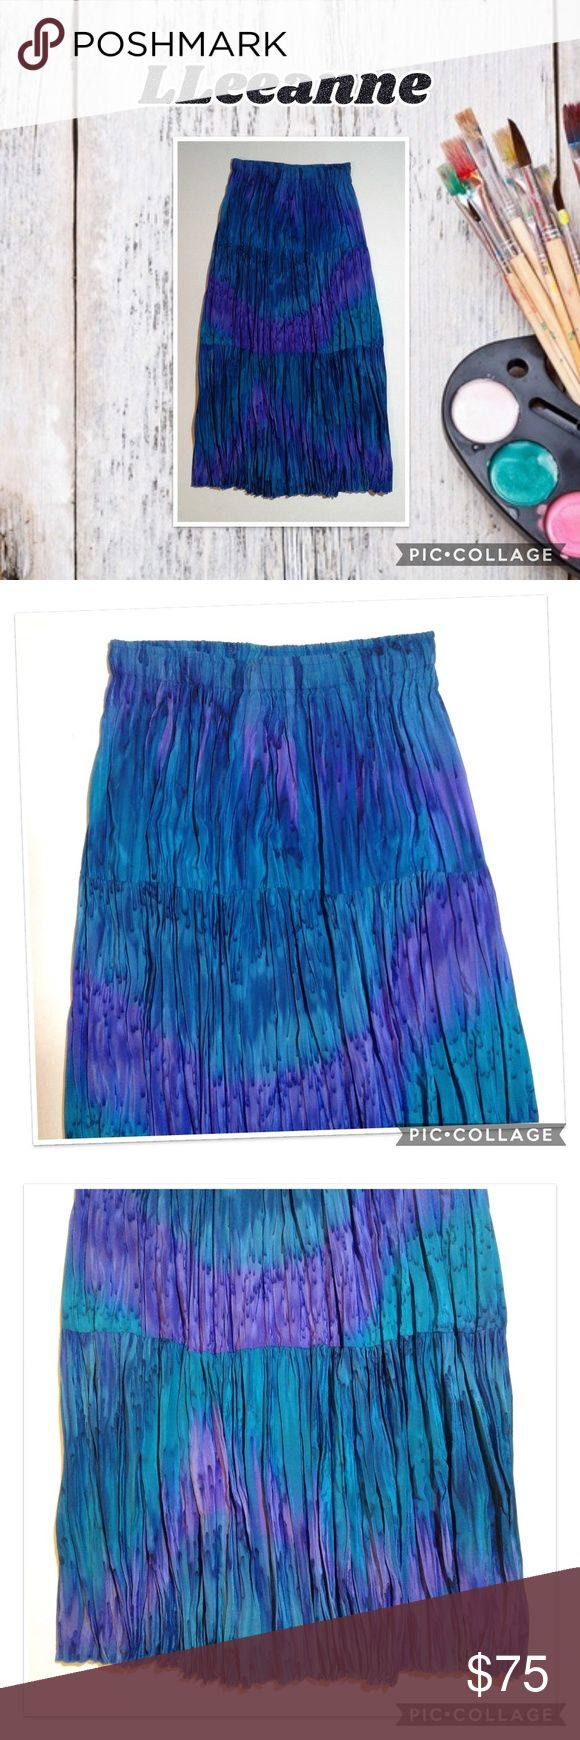 LLeeanne Original Hand Painted Silk Skirt Gorgeous blue and purple hand painted …